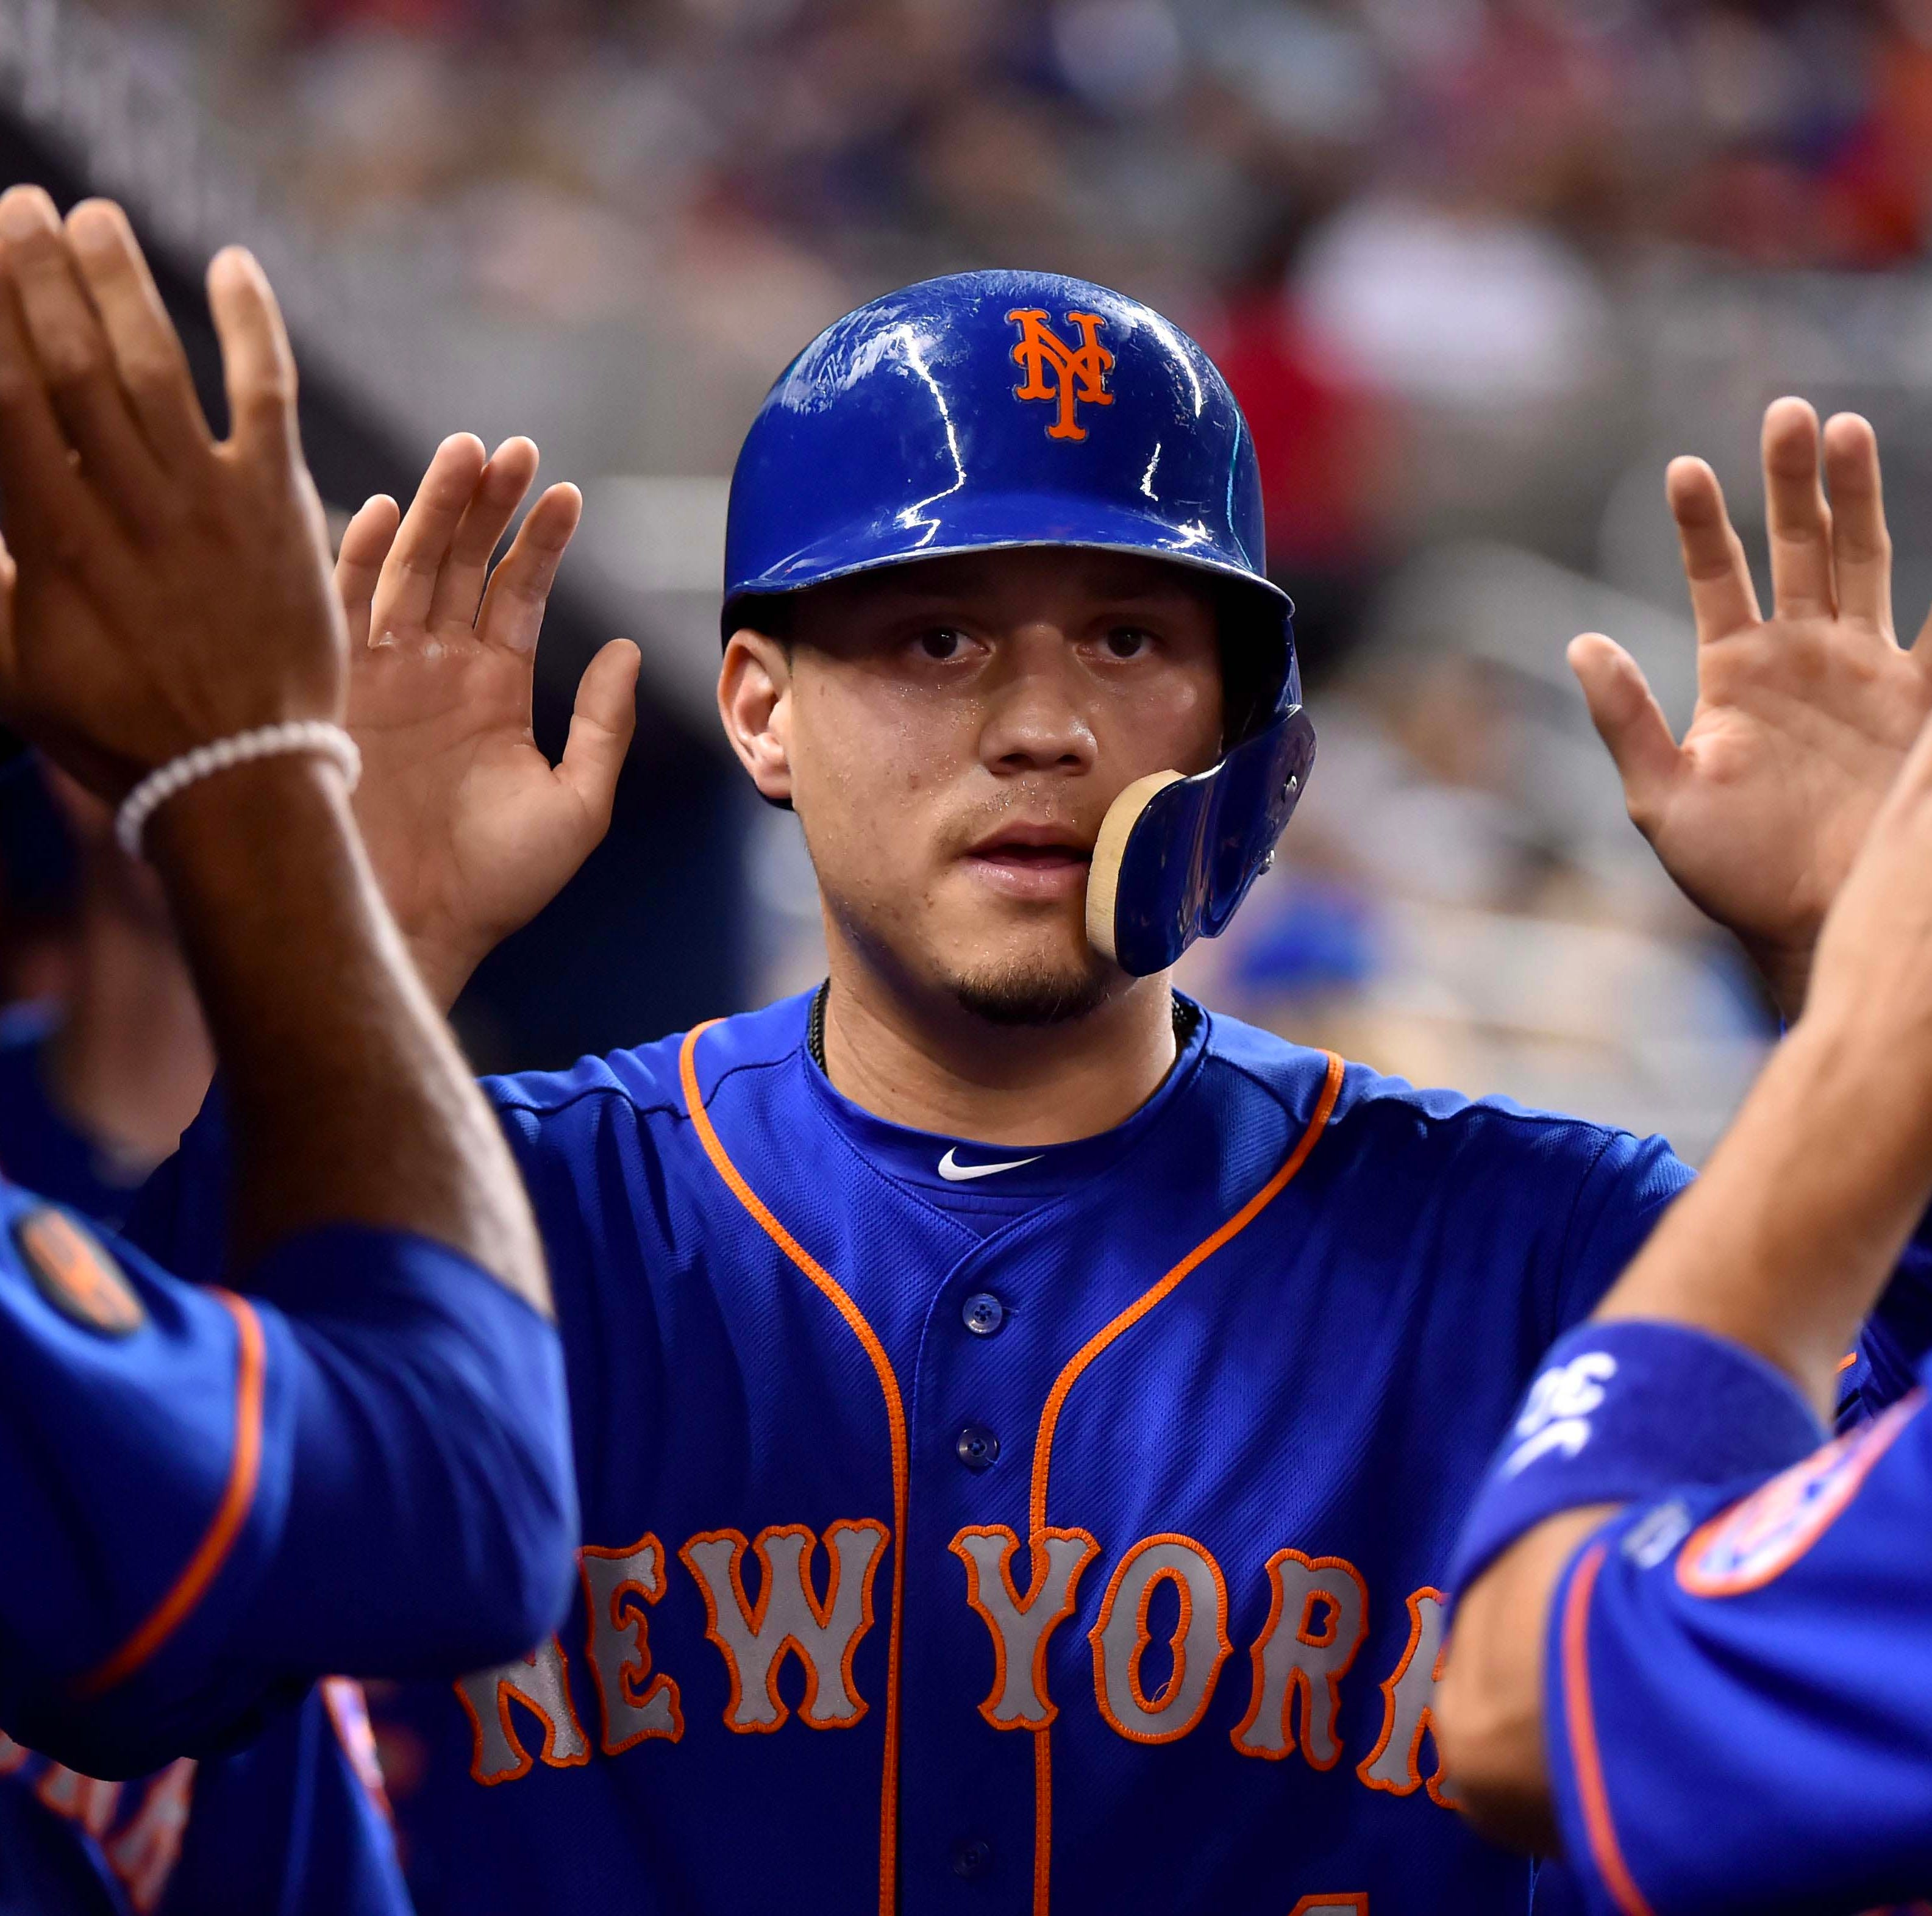 Diamondbacks agree to terms with former Mets infielder Wilmer Flores